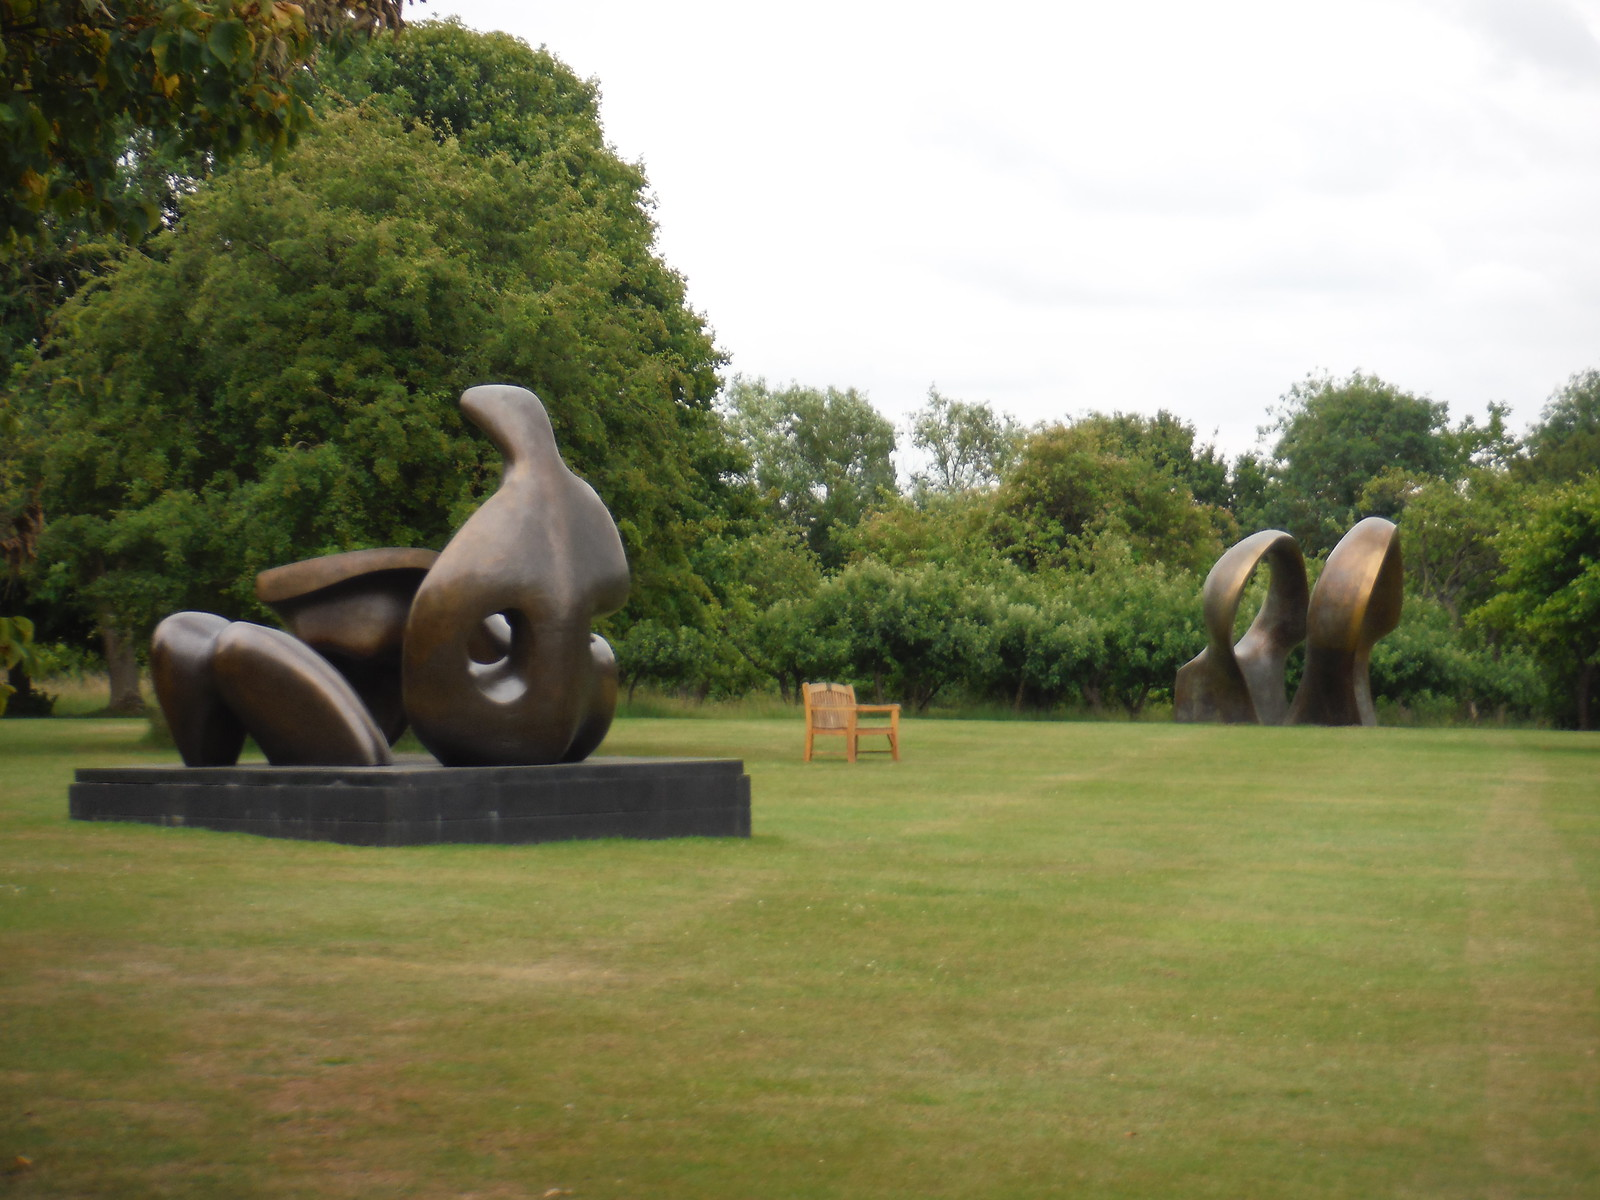 Some Henry Moore Sculptures, visible from the Public Footpath SWC Walk 210 - Sawbridgeworth to Bishop's Stortfort (via Henry Moore Foundation)